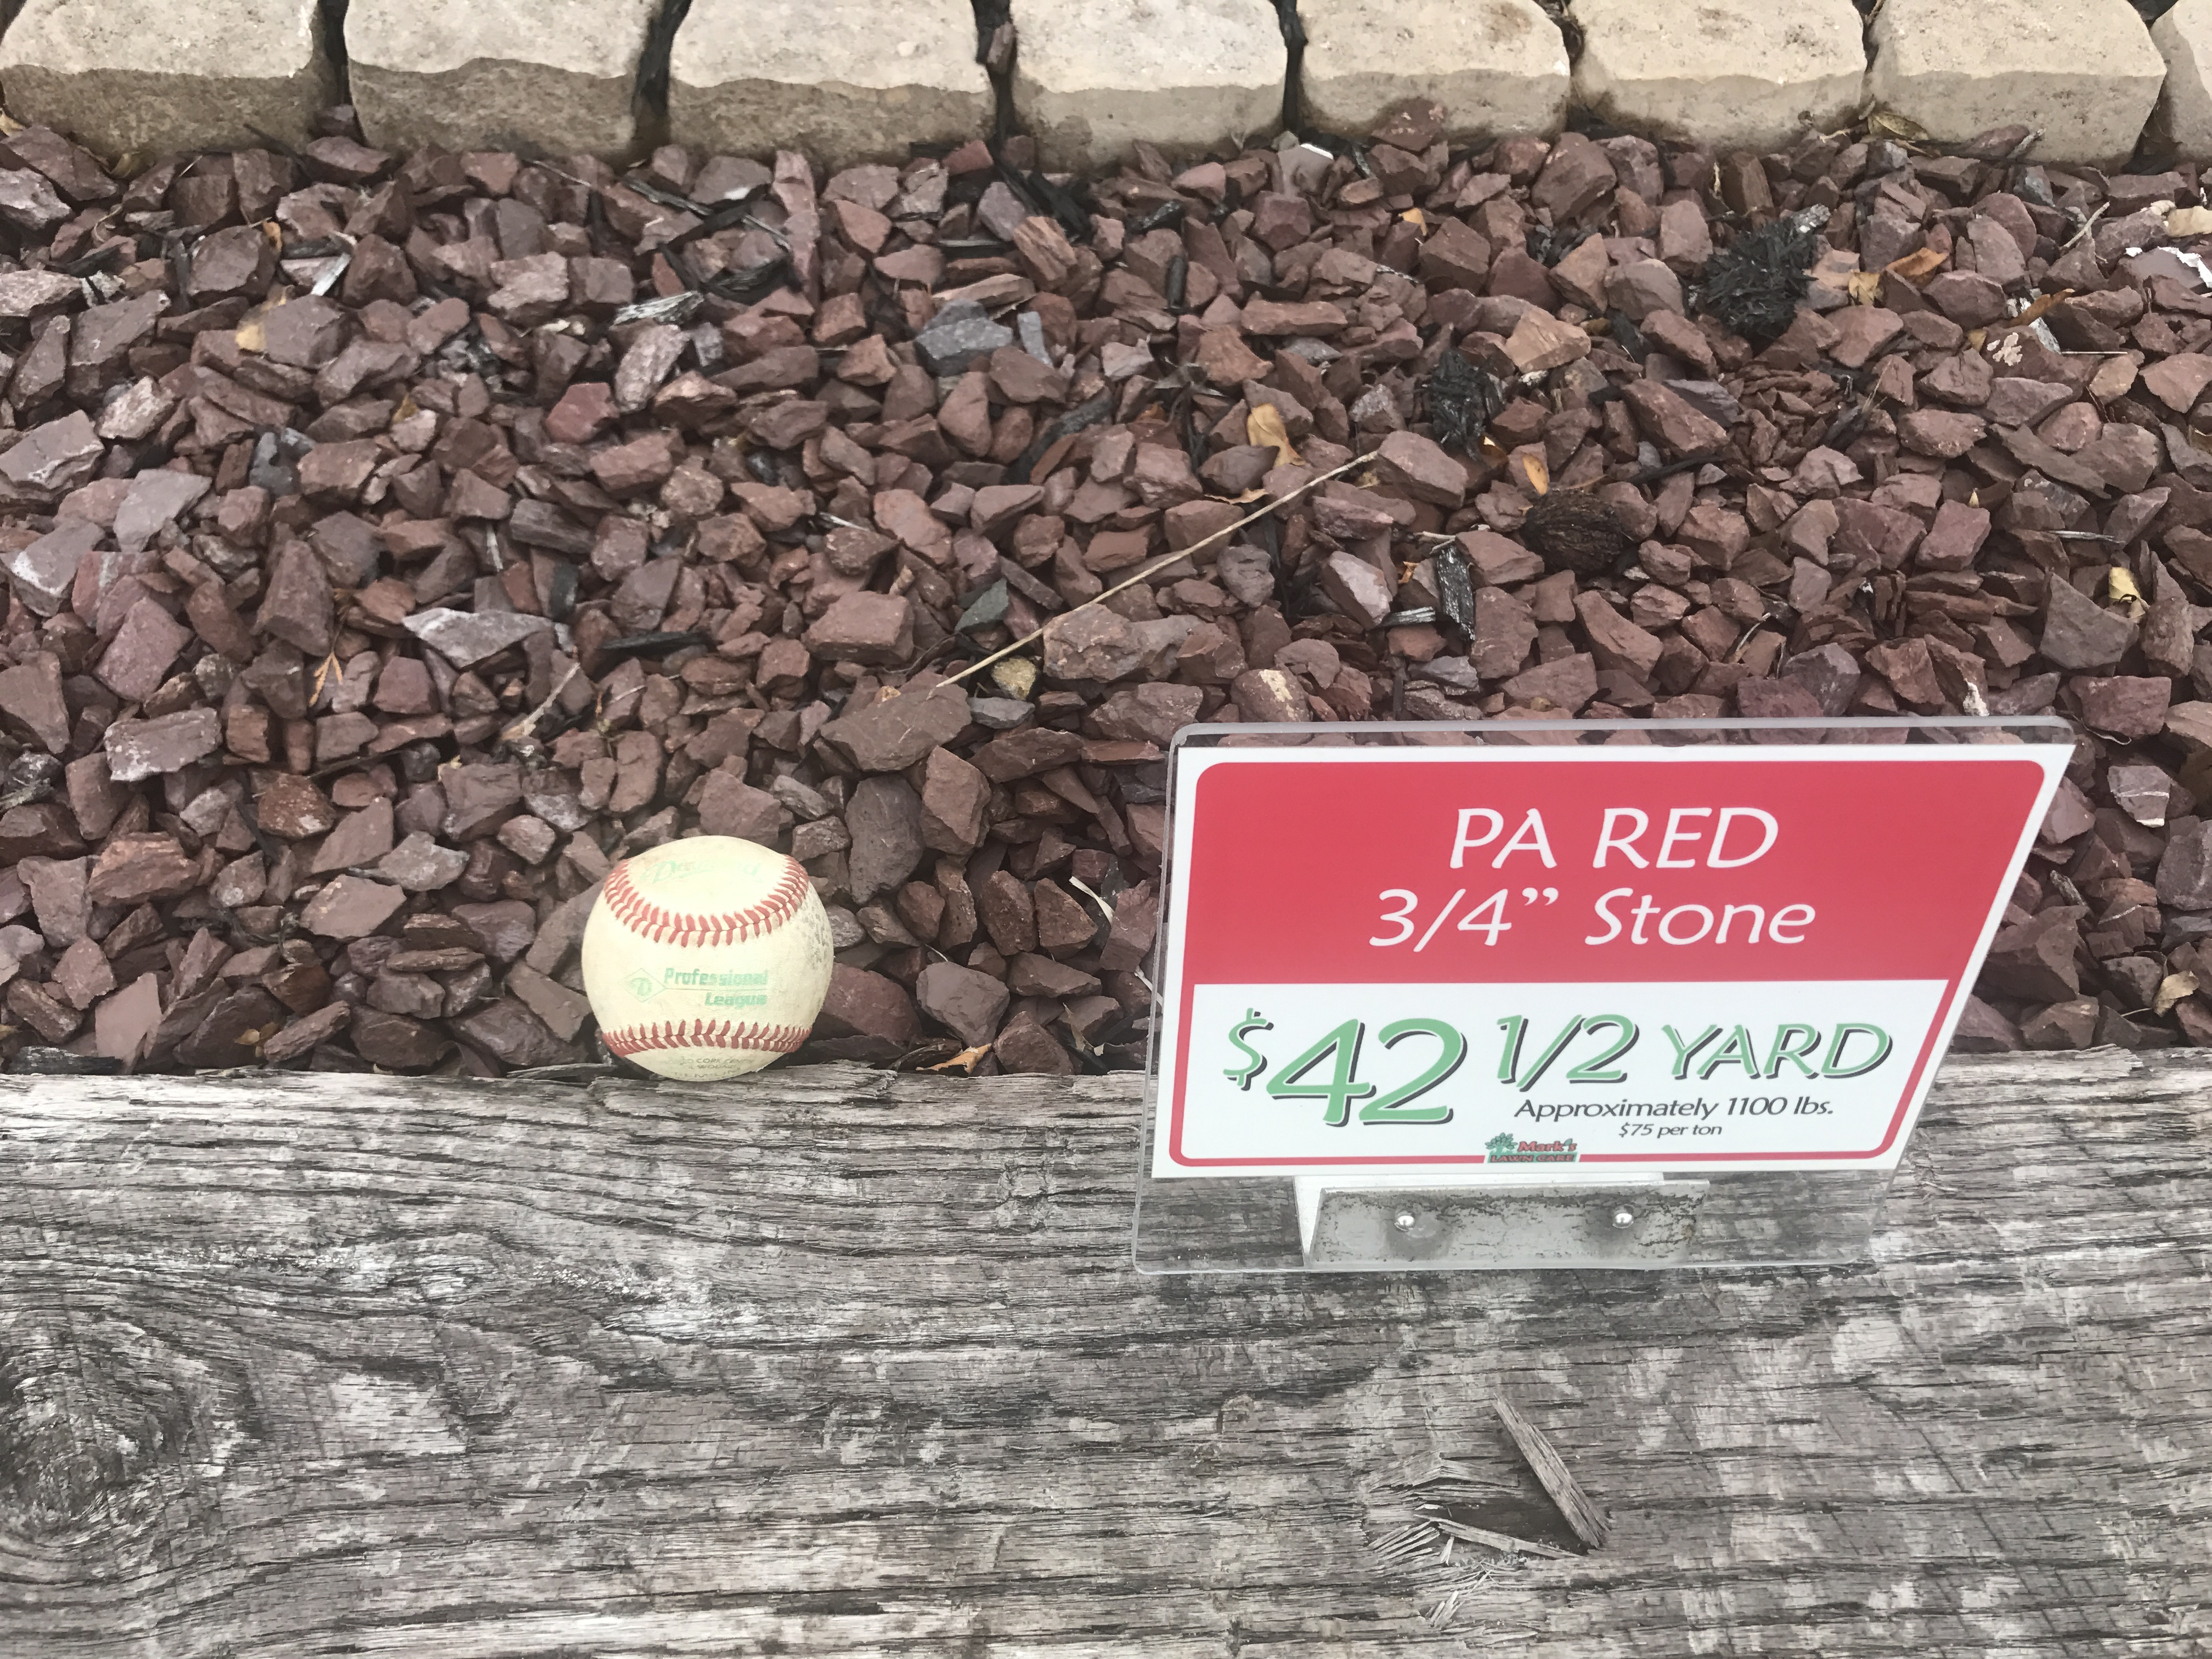 Pa red 3 4 stone per 1 2 yard or ton mark 39 s lawn care for Landscaping rocks by the ton